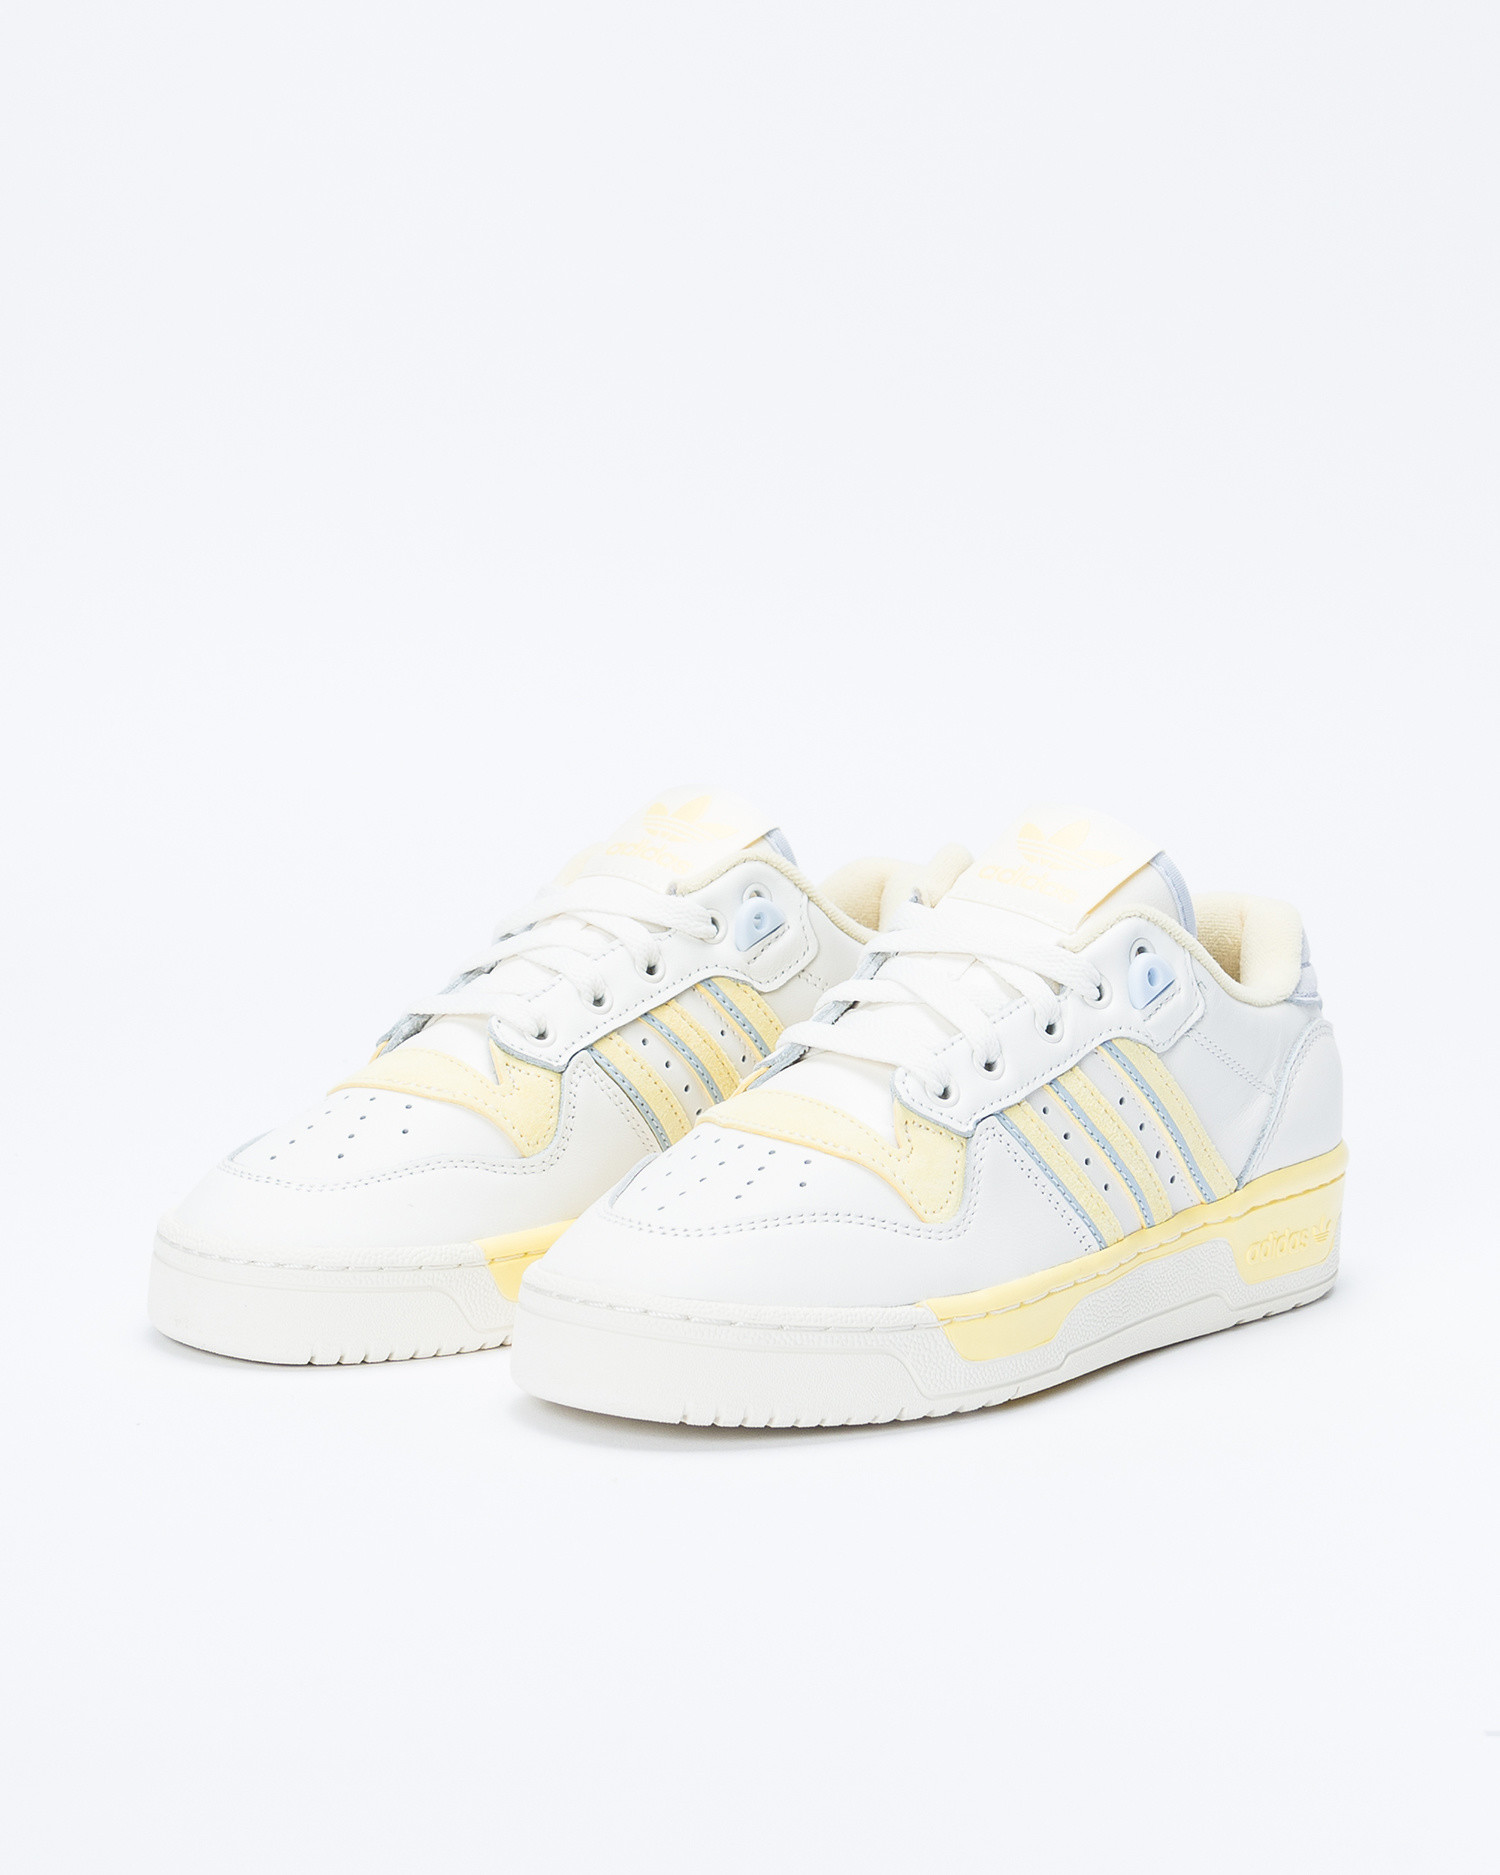 Adidas Rivalry Low clowhi/owhite/easyel